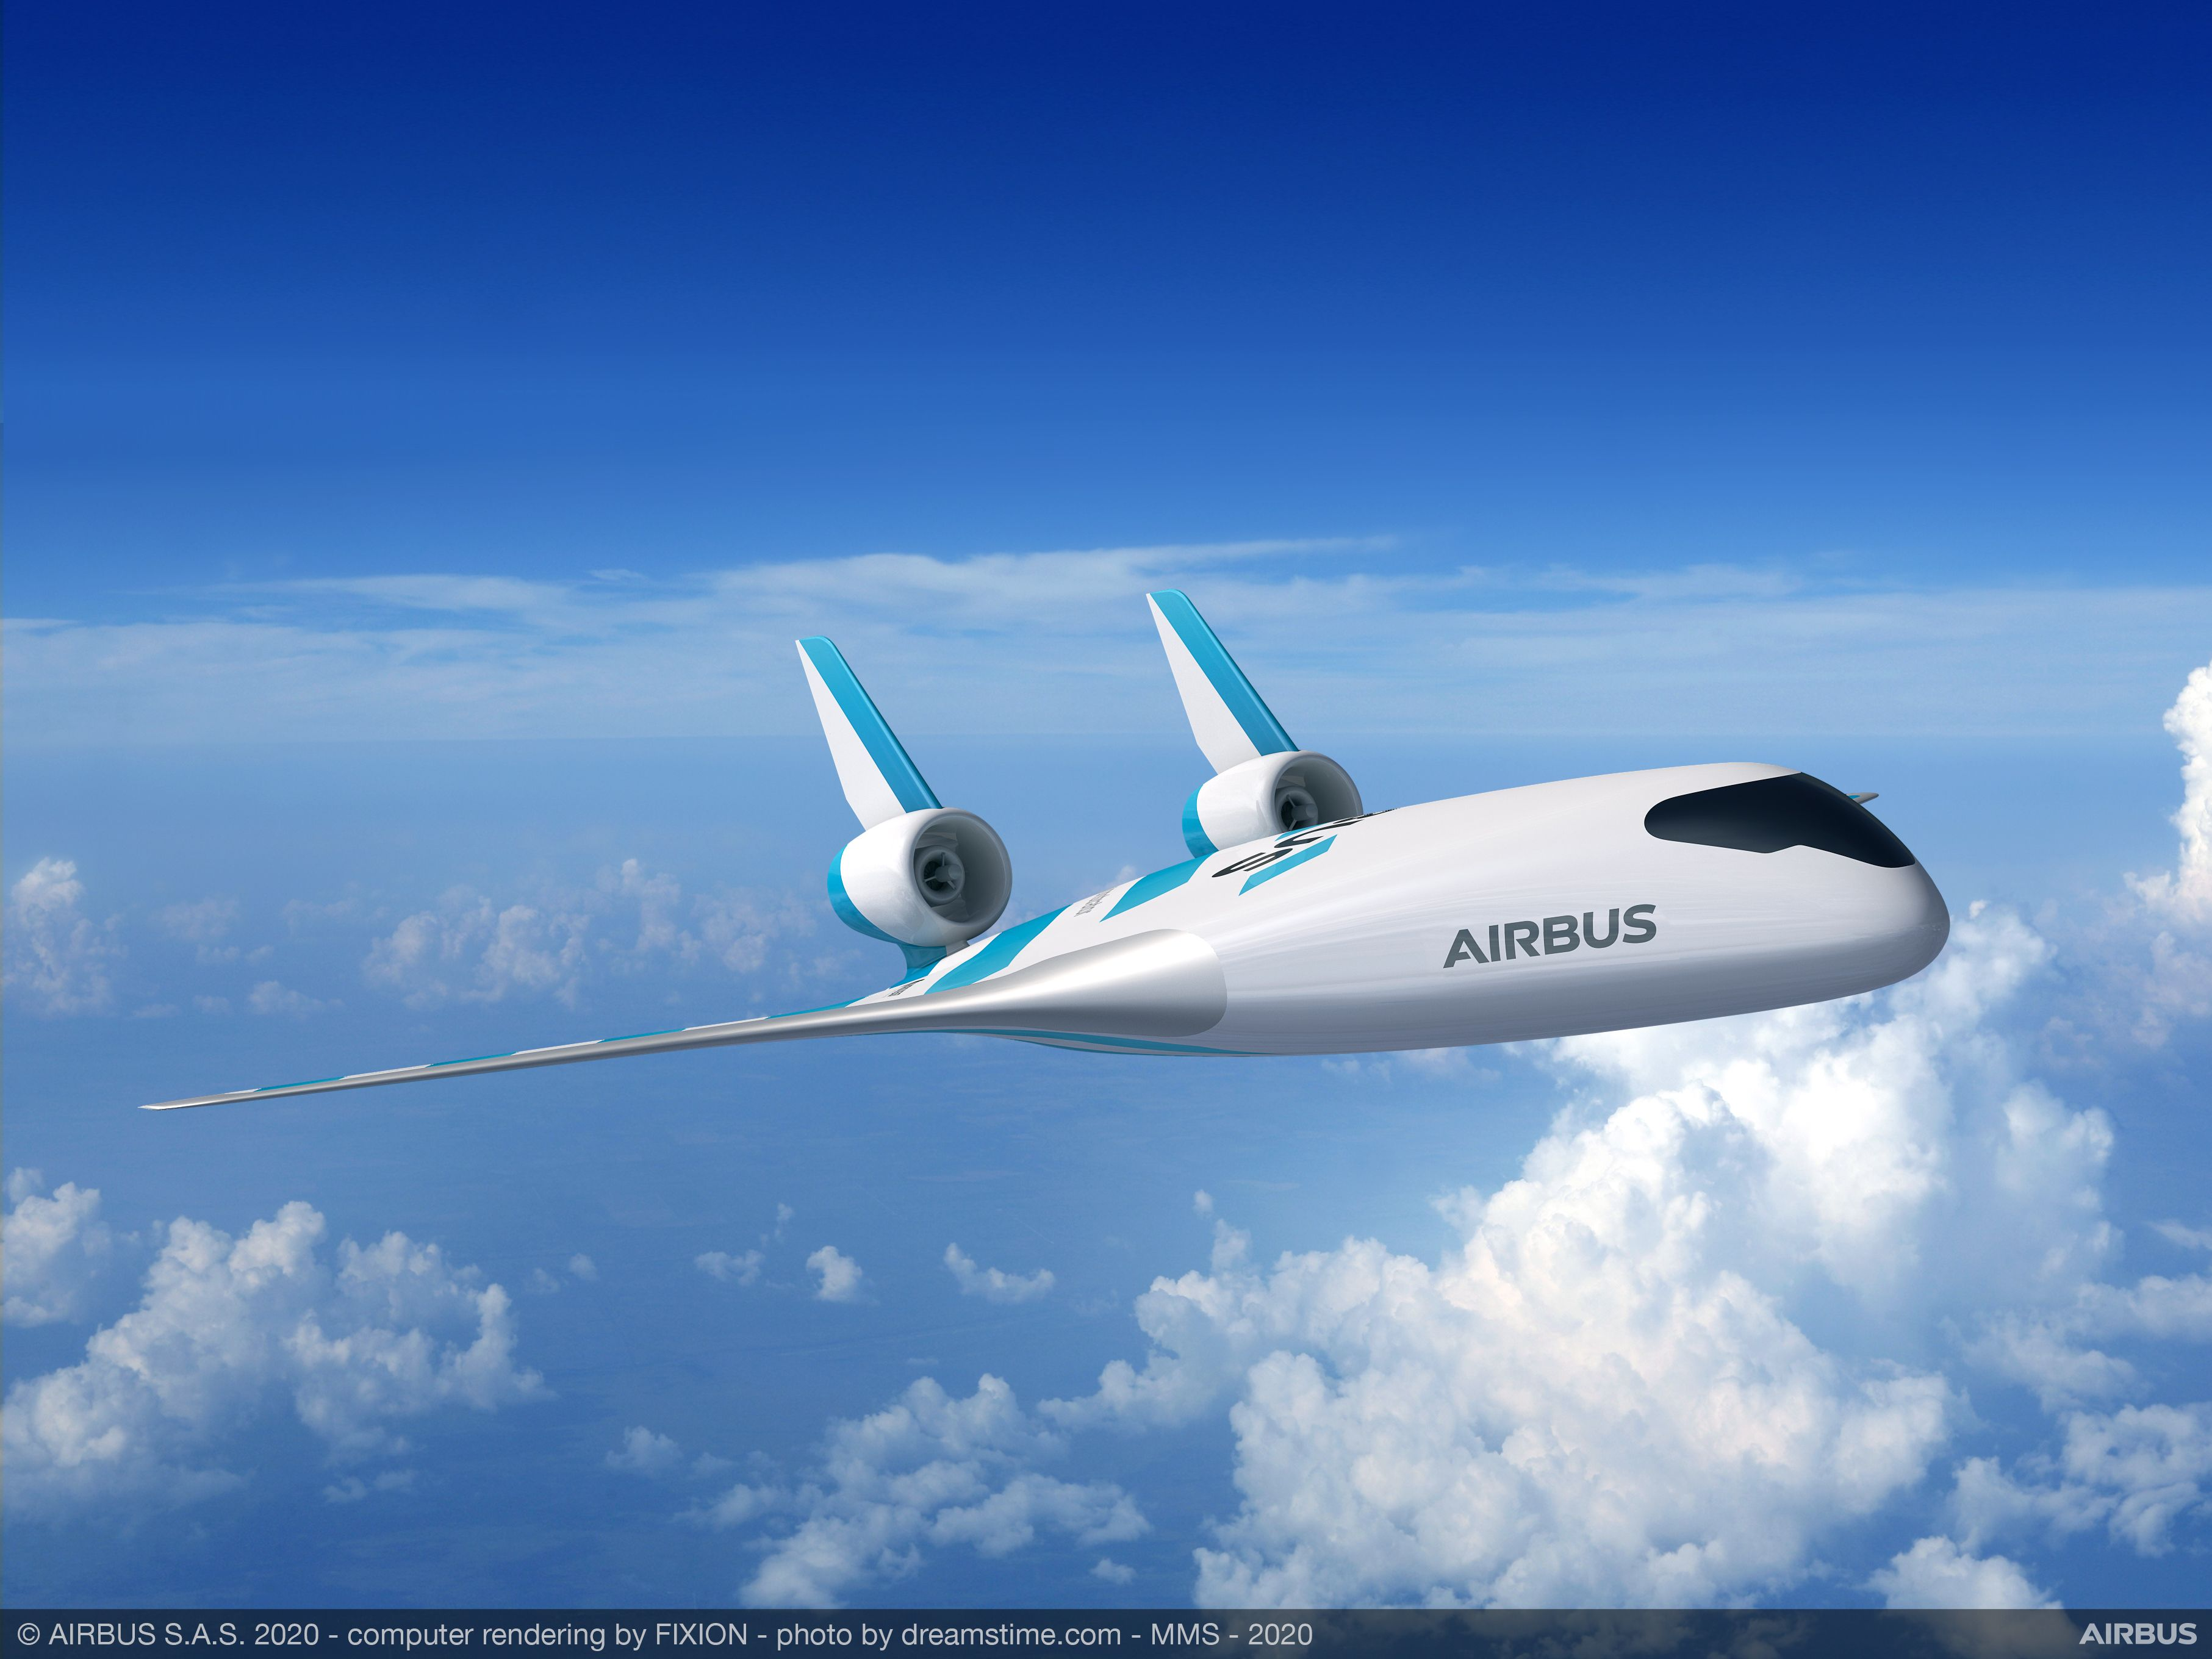 Airbus are looking to the future